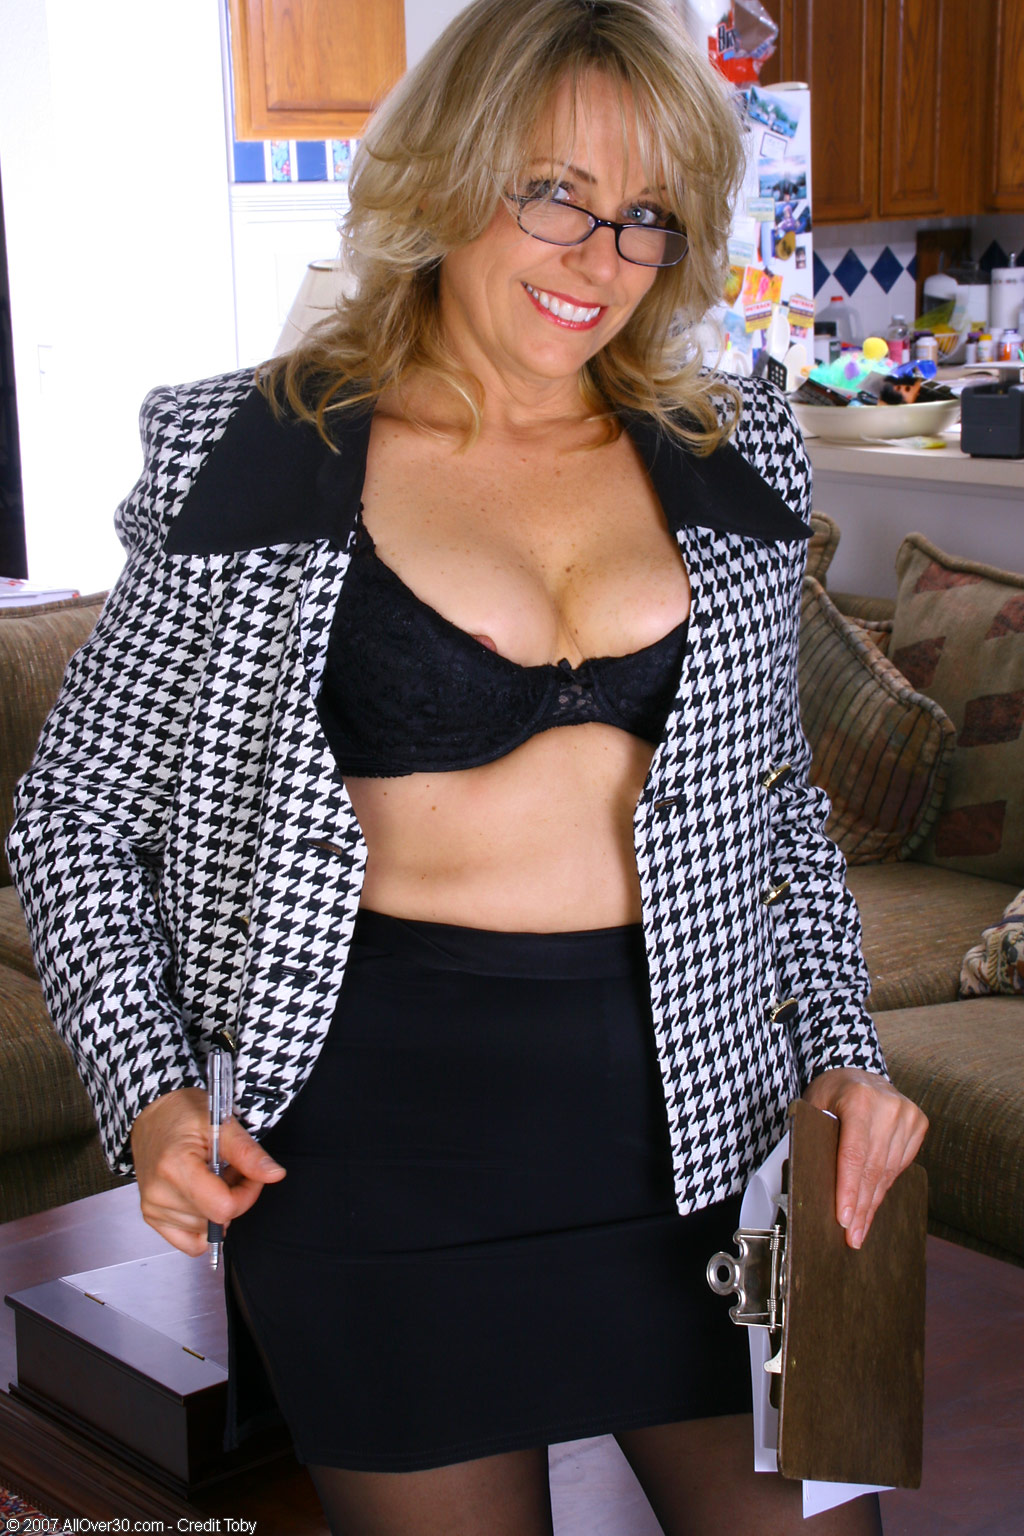 ... of the Year, Leah! » 04 - MILFs Over 30 - All Over 30 Nude Matures